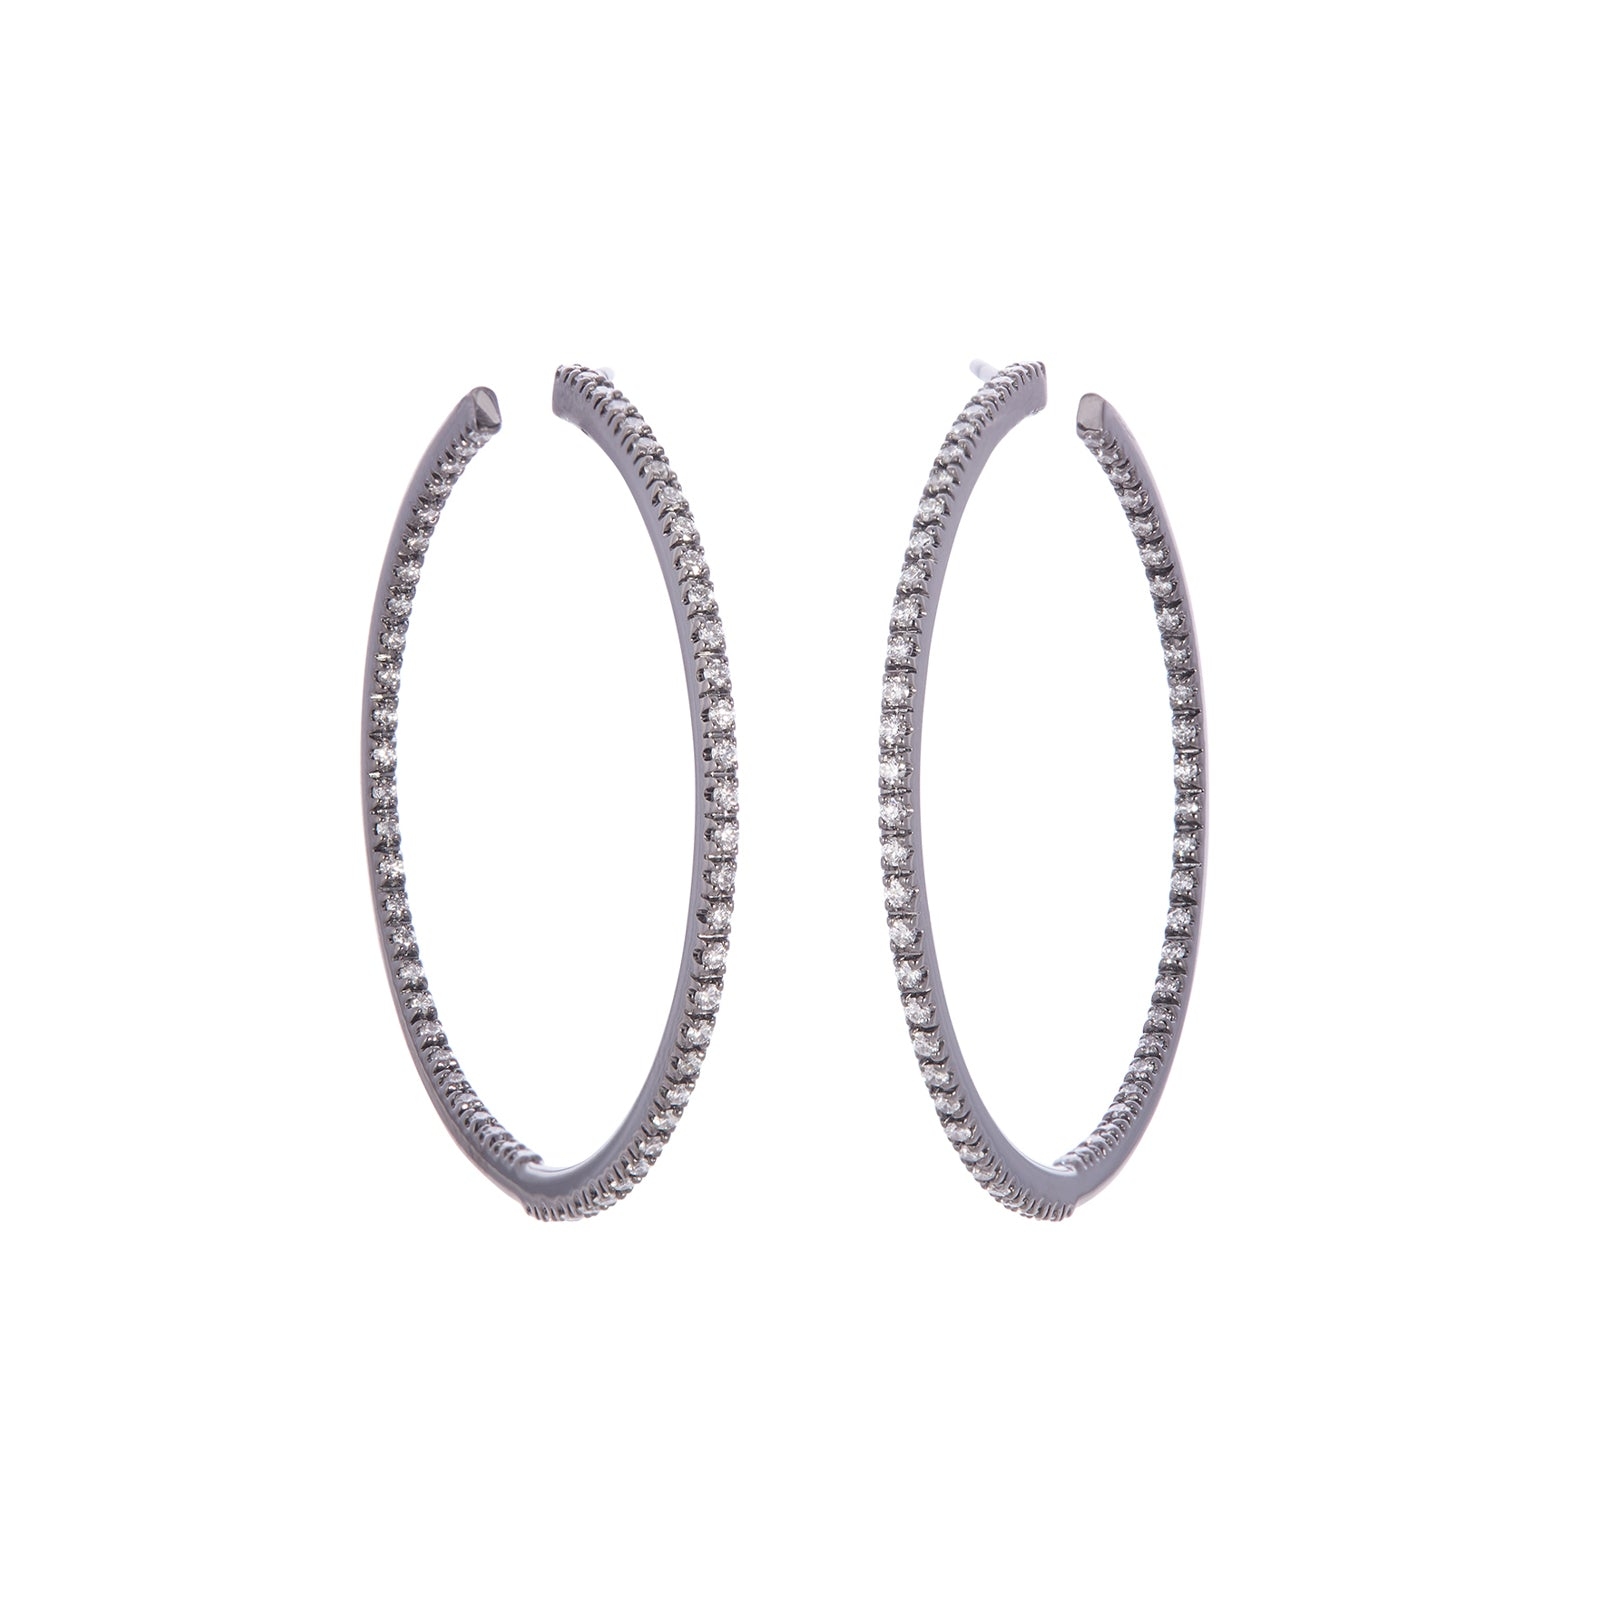 Sidney Garber Perfect Medium Hoops - White Gold - Earrings - Broken English Jewelry